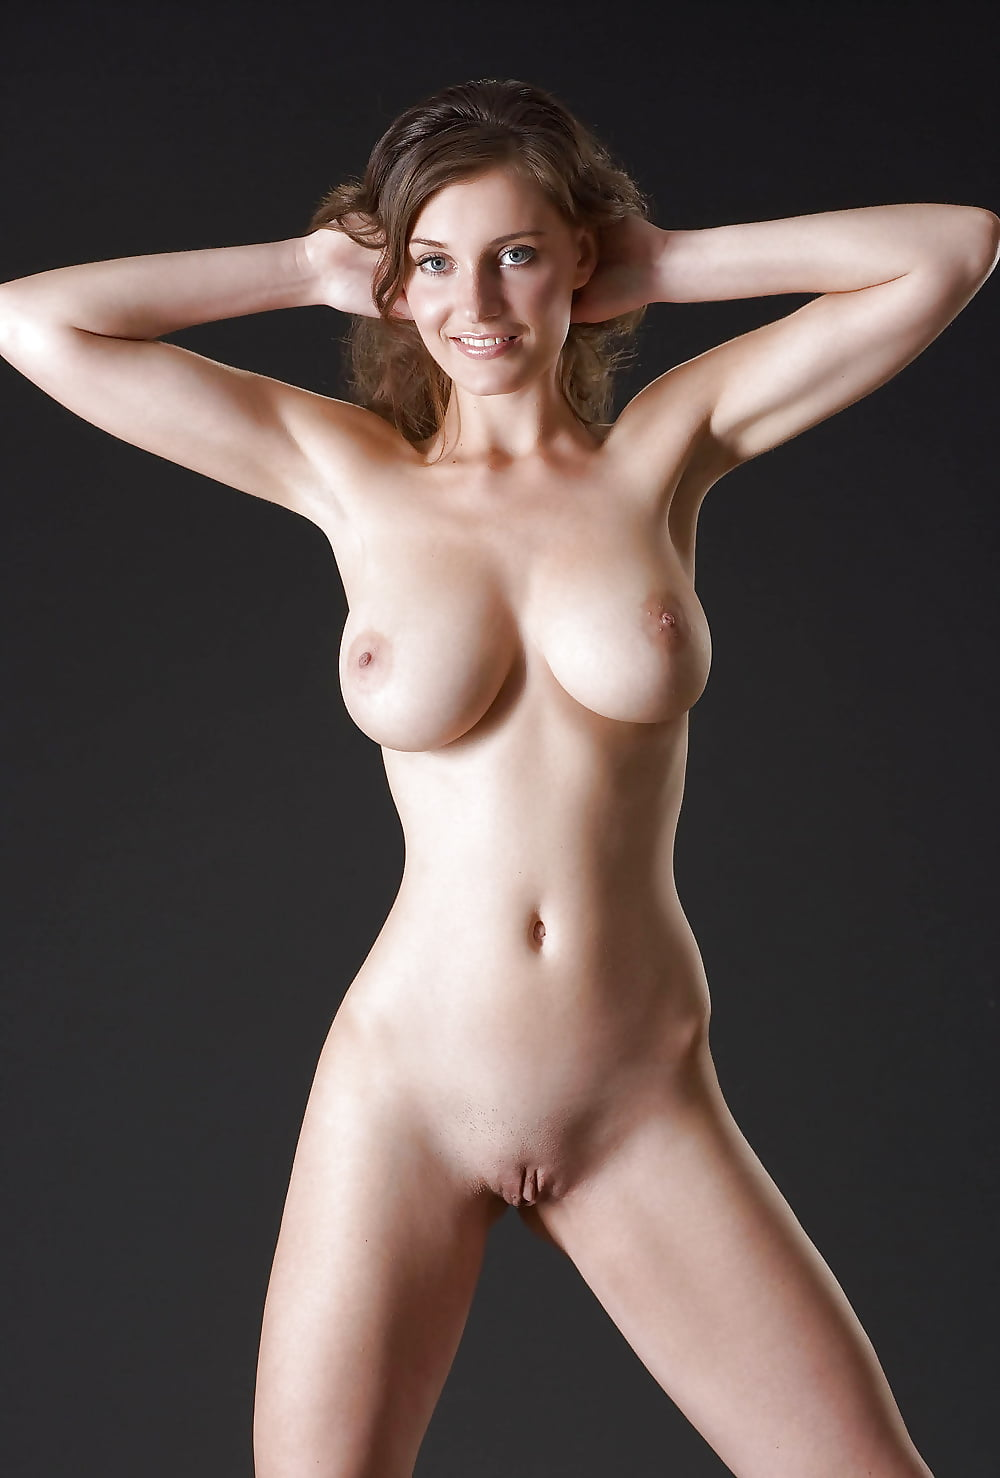 Naked Beautiful Female Body